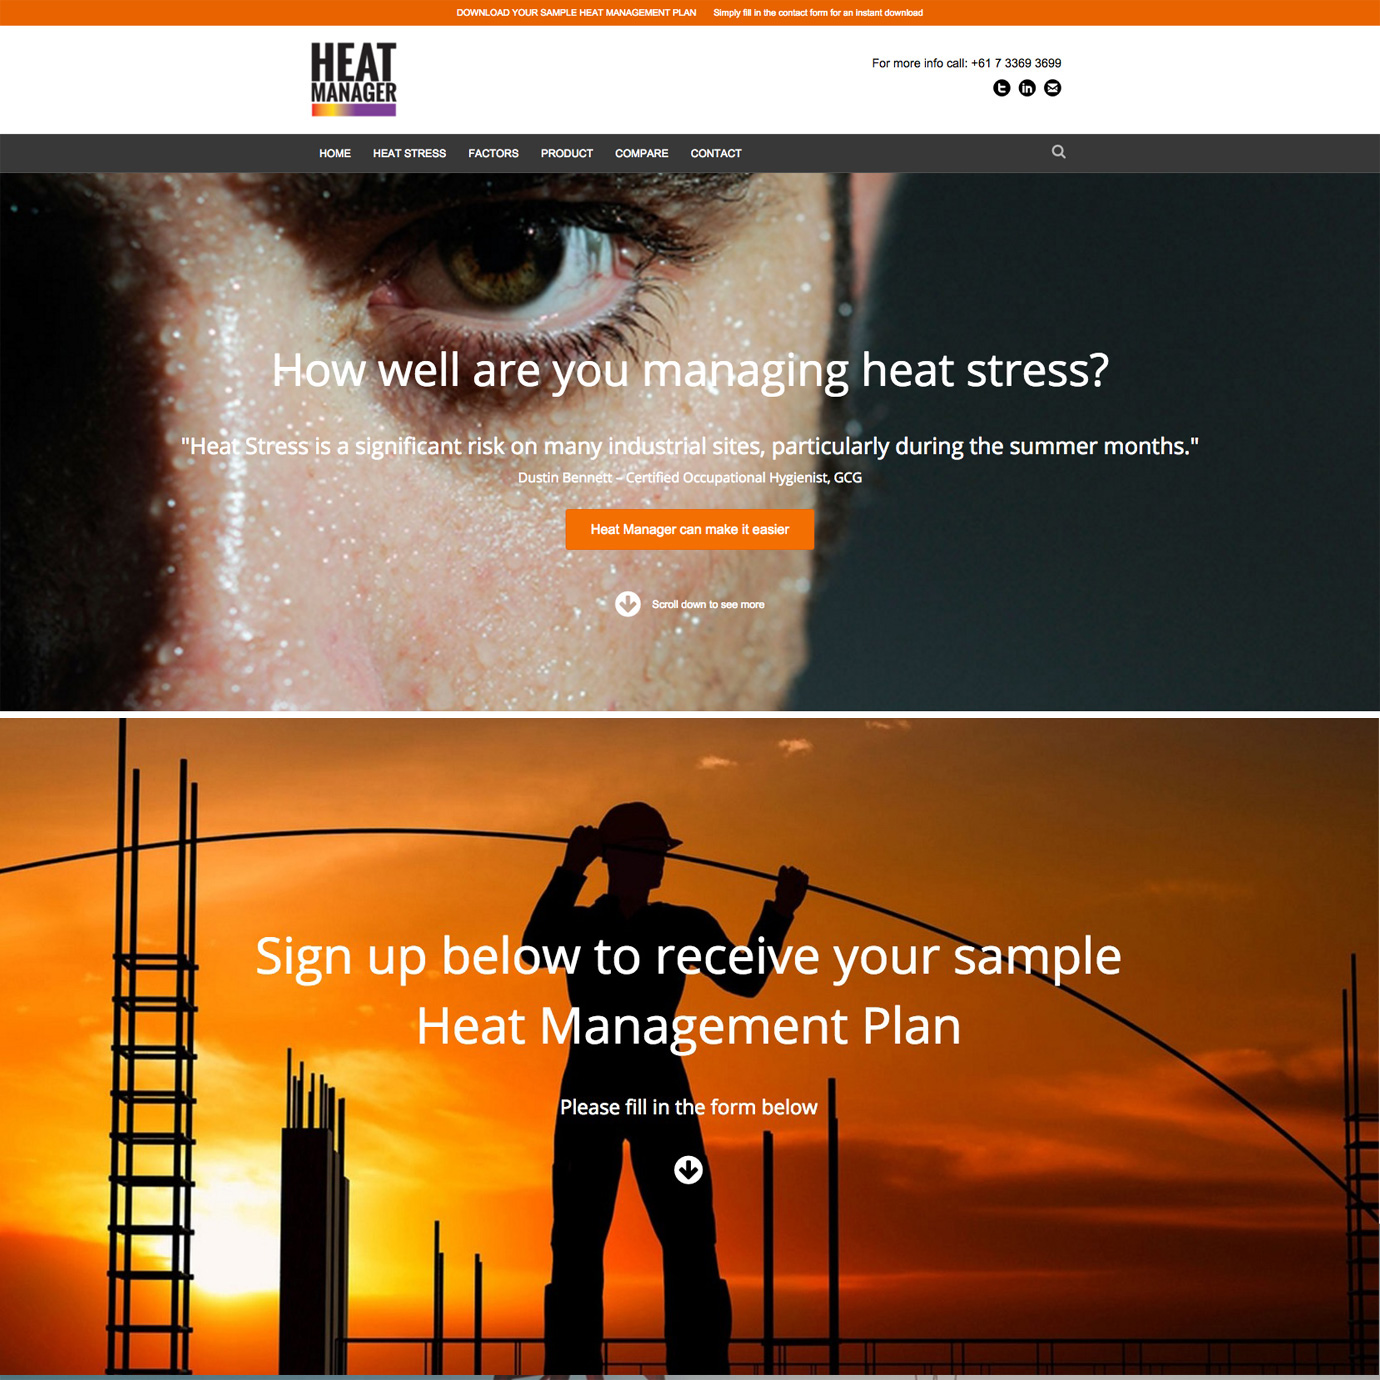 Heat Manager website